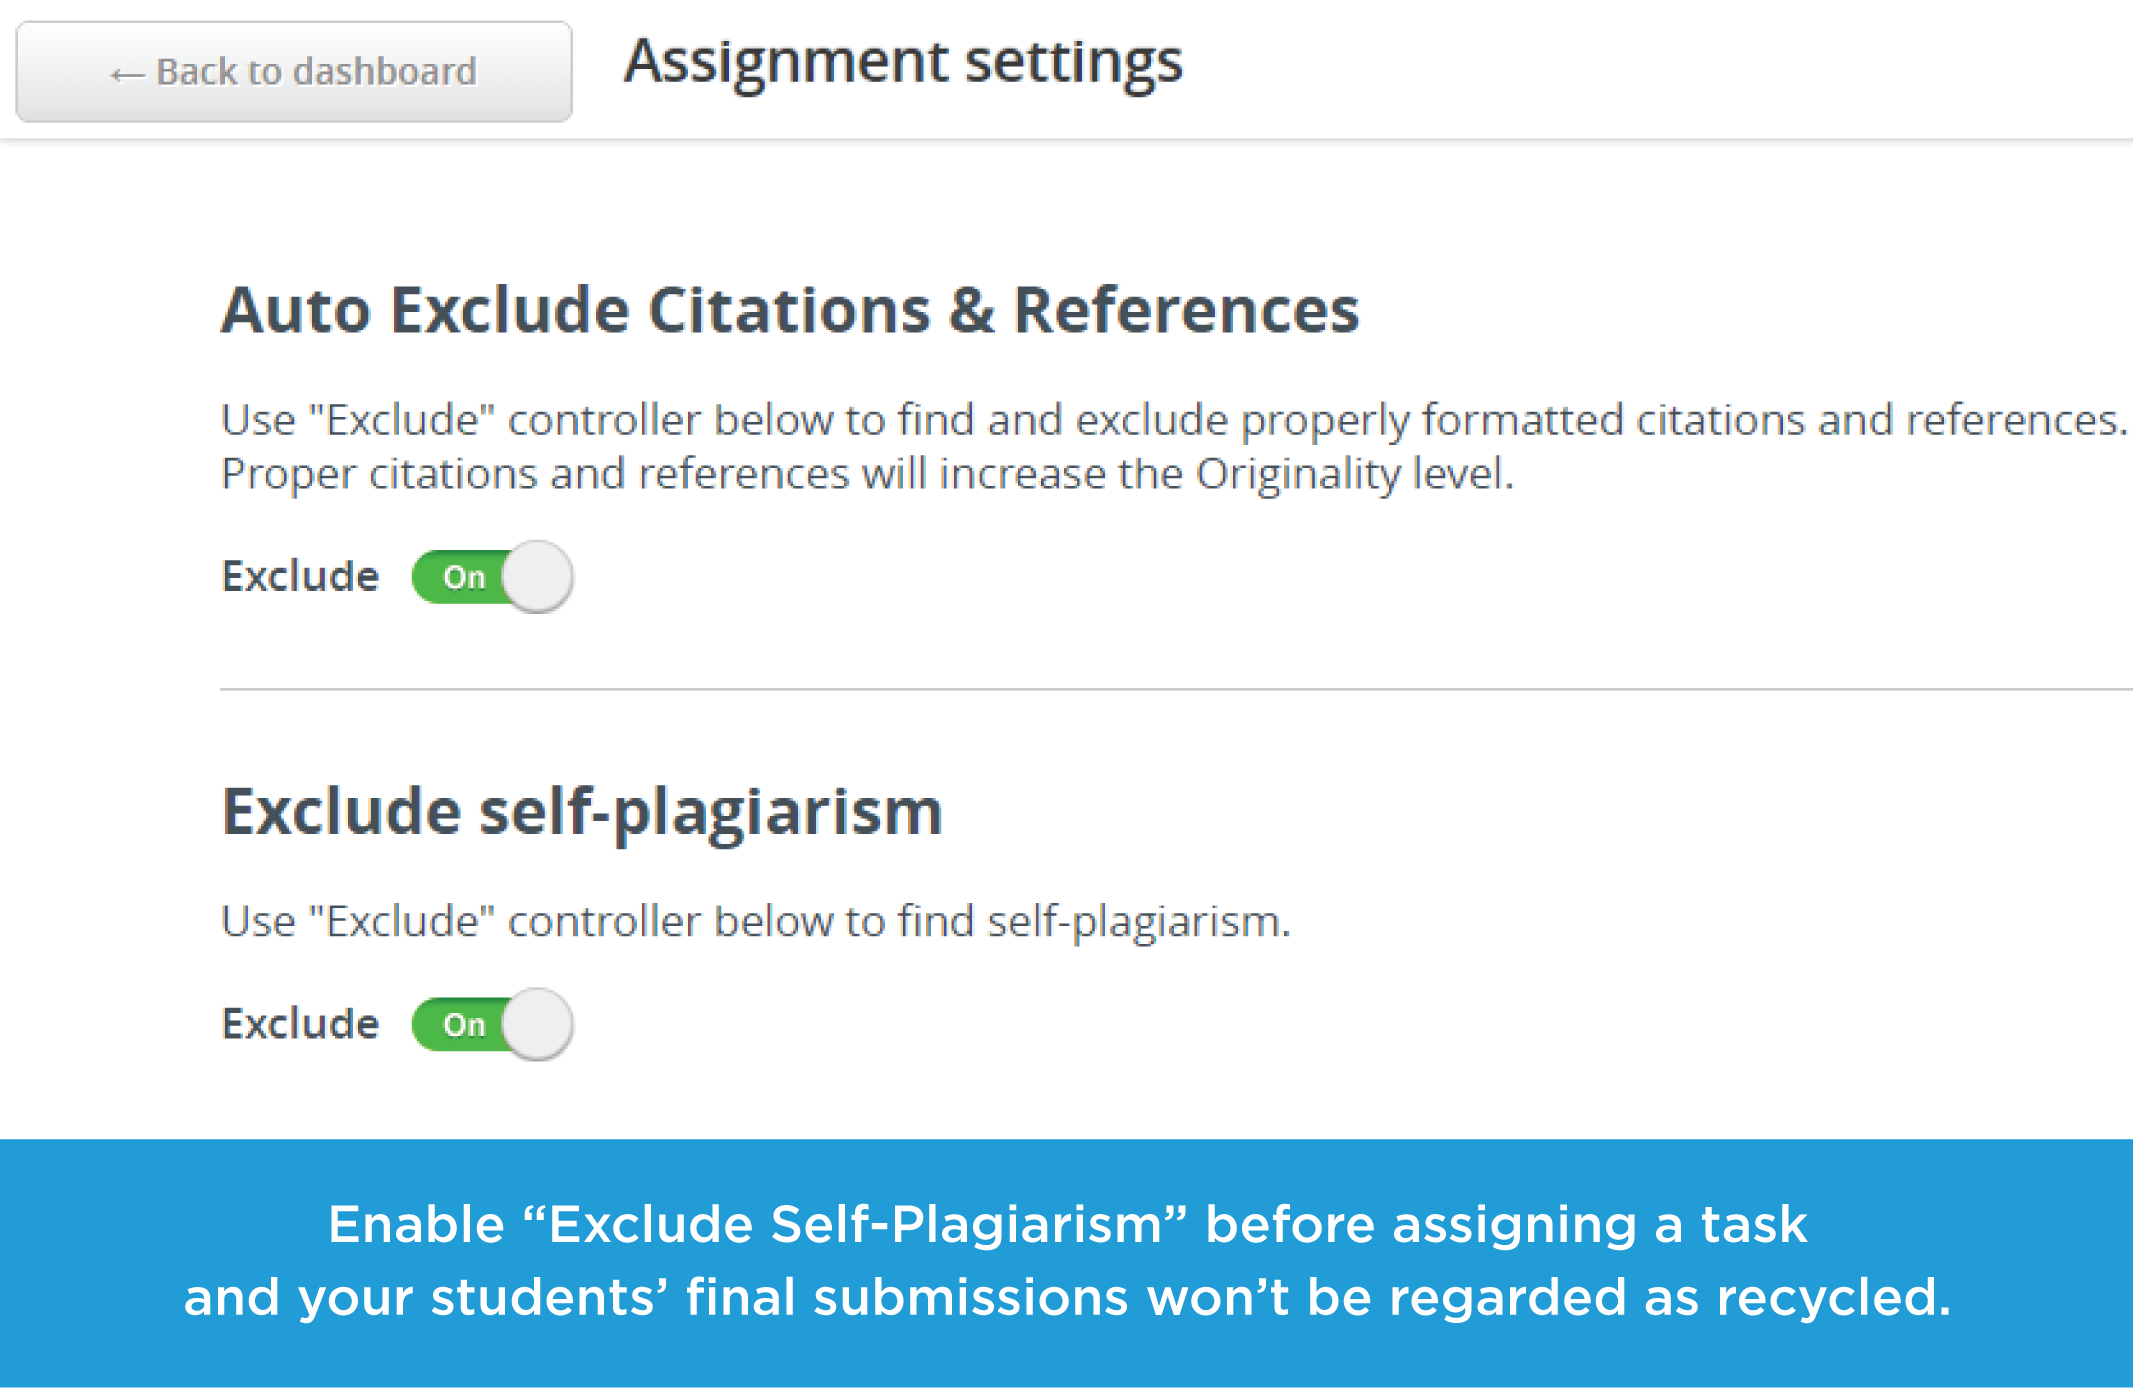 Feature to Exclude Self-Plagiarism